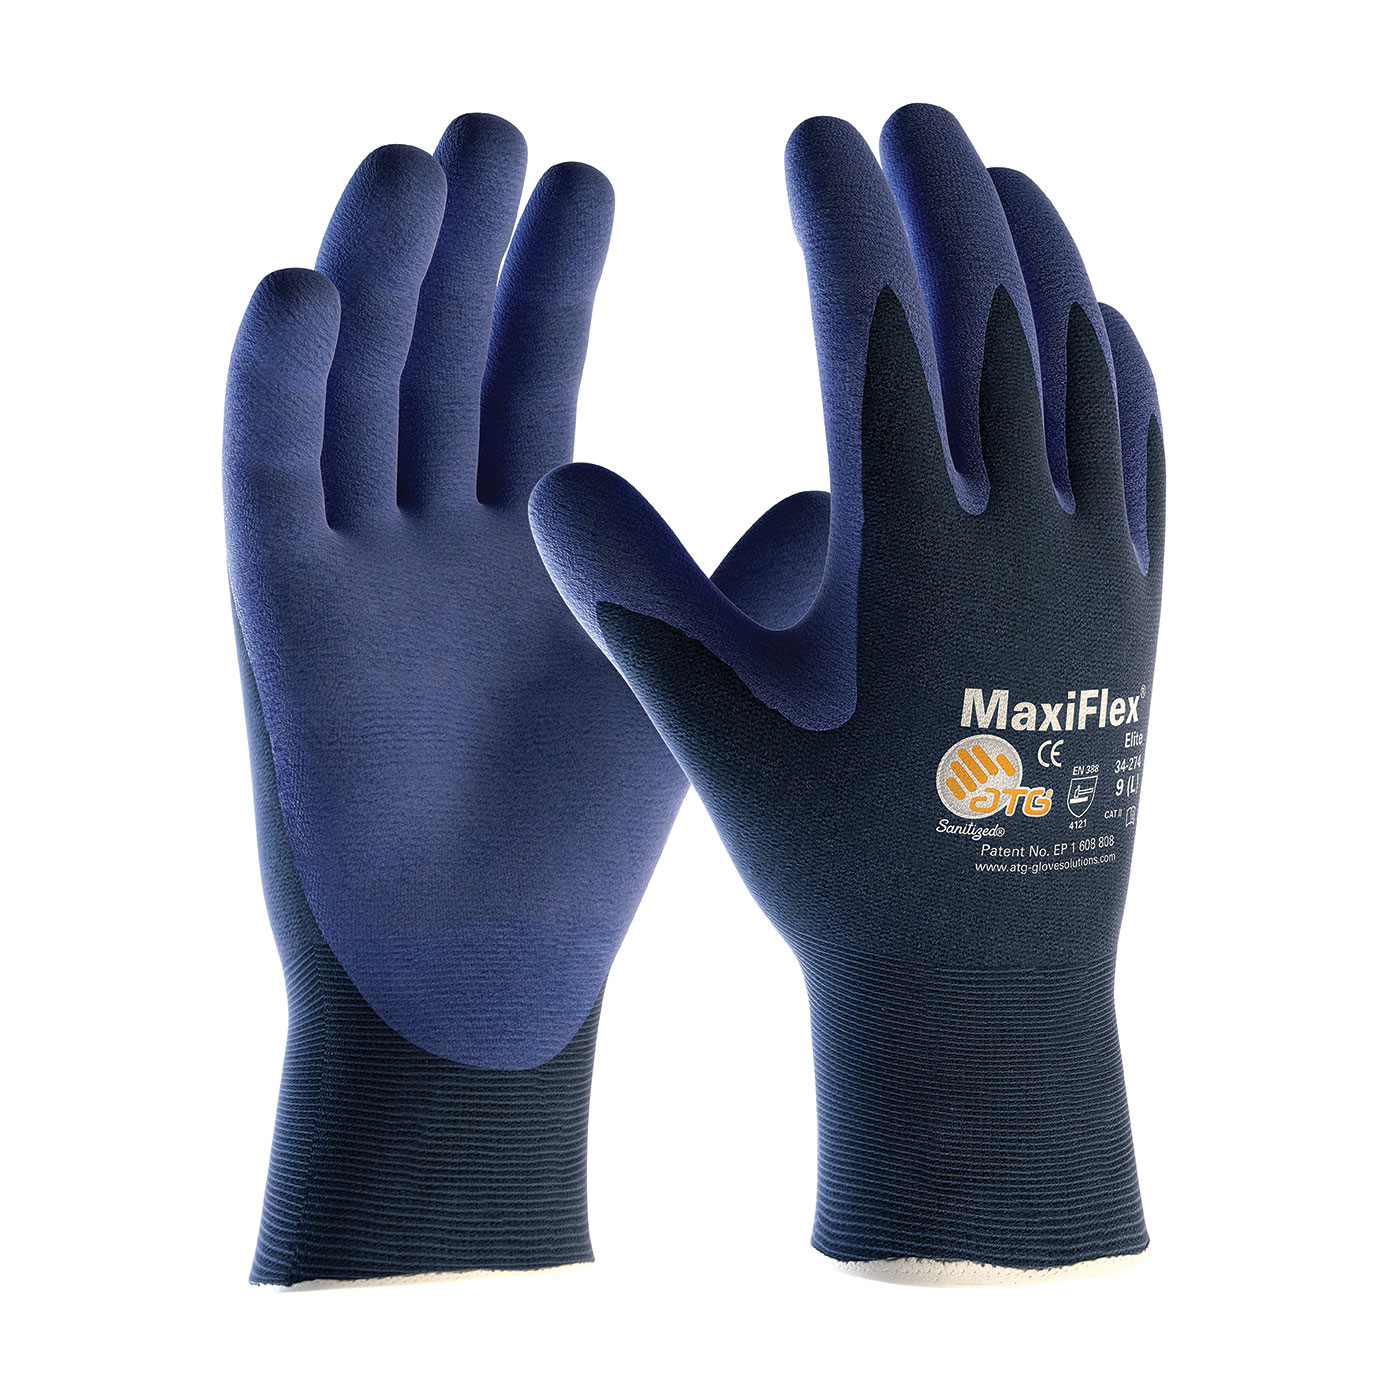 PIP 34-274XL G-TEK MAXIFLEX ELITE BLUE MICRO-FOAM NITRILE COATED PALM & FINGER TIPS GLOVE X-LARGE